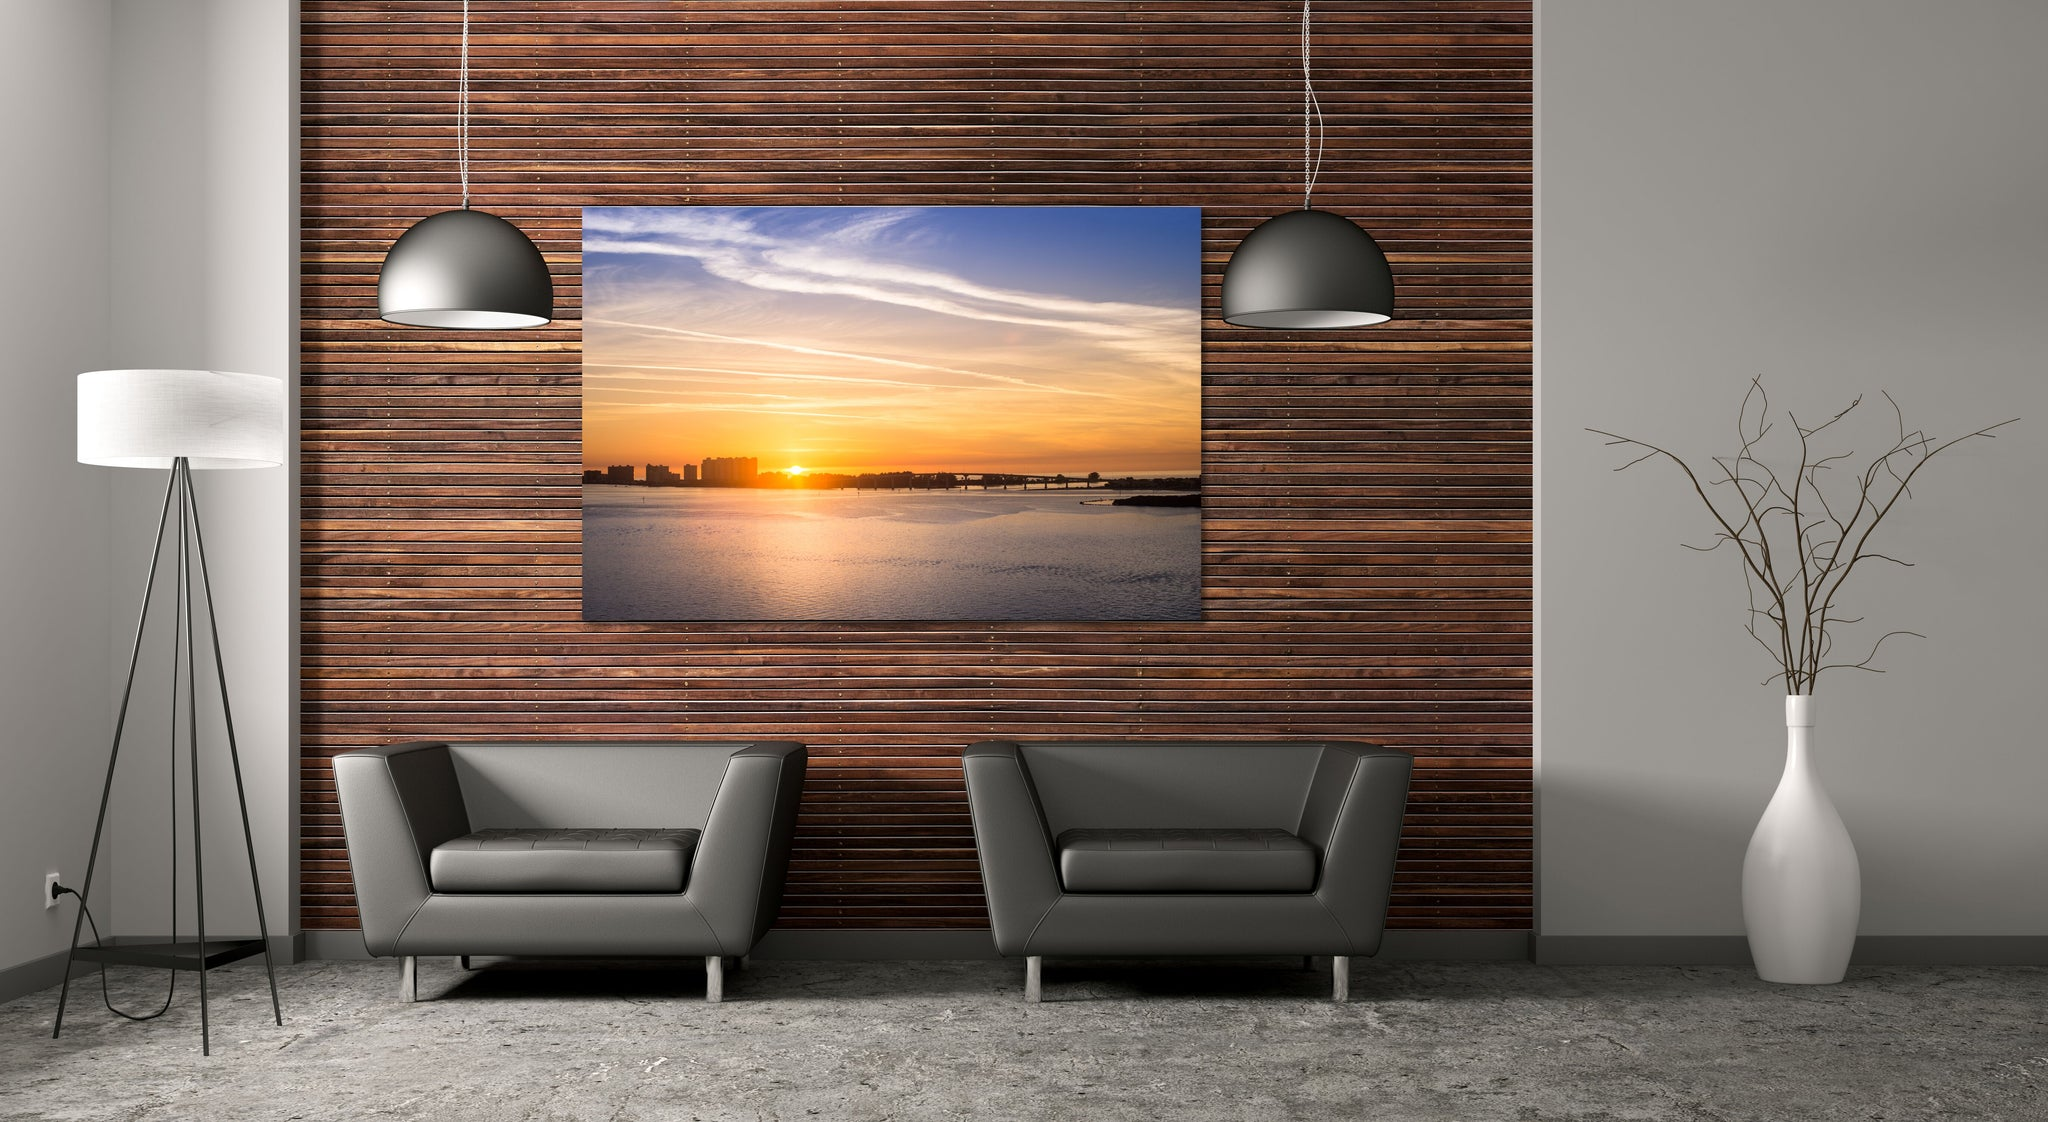 Clearwater Sunset Sandkey Bridge Florida Canvas Print Metal Art Cityscape Landmark Bedroom Livingroom wall art decor